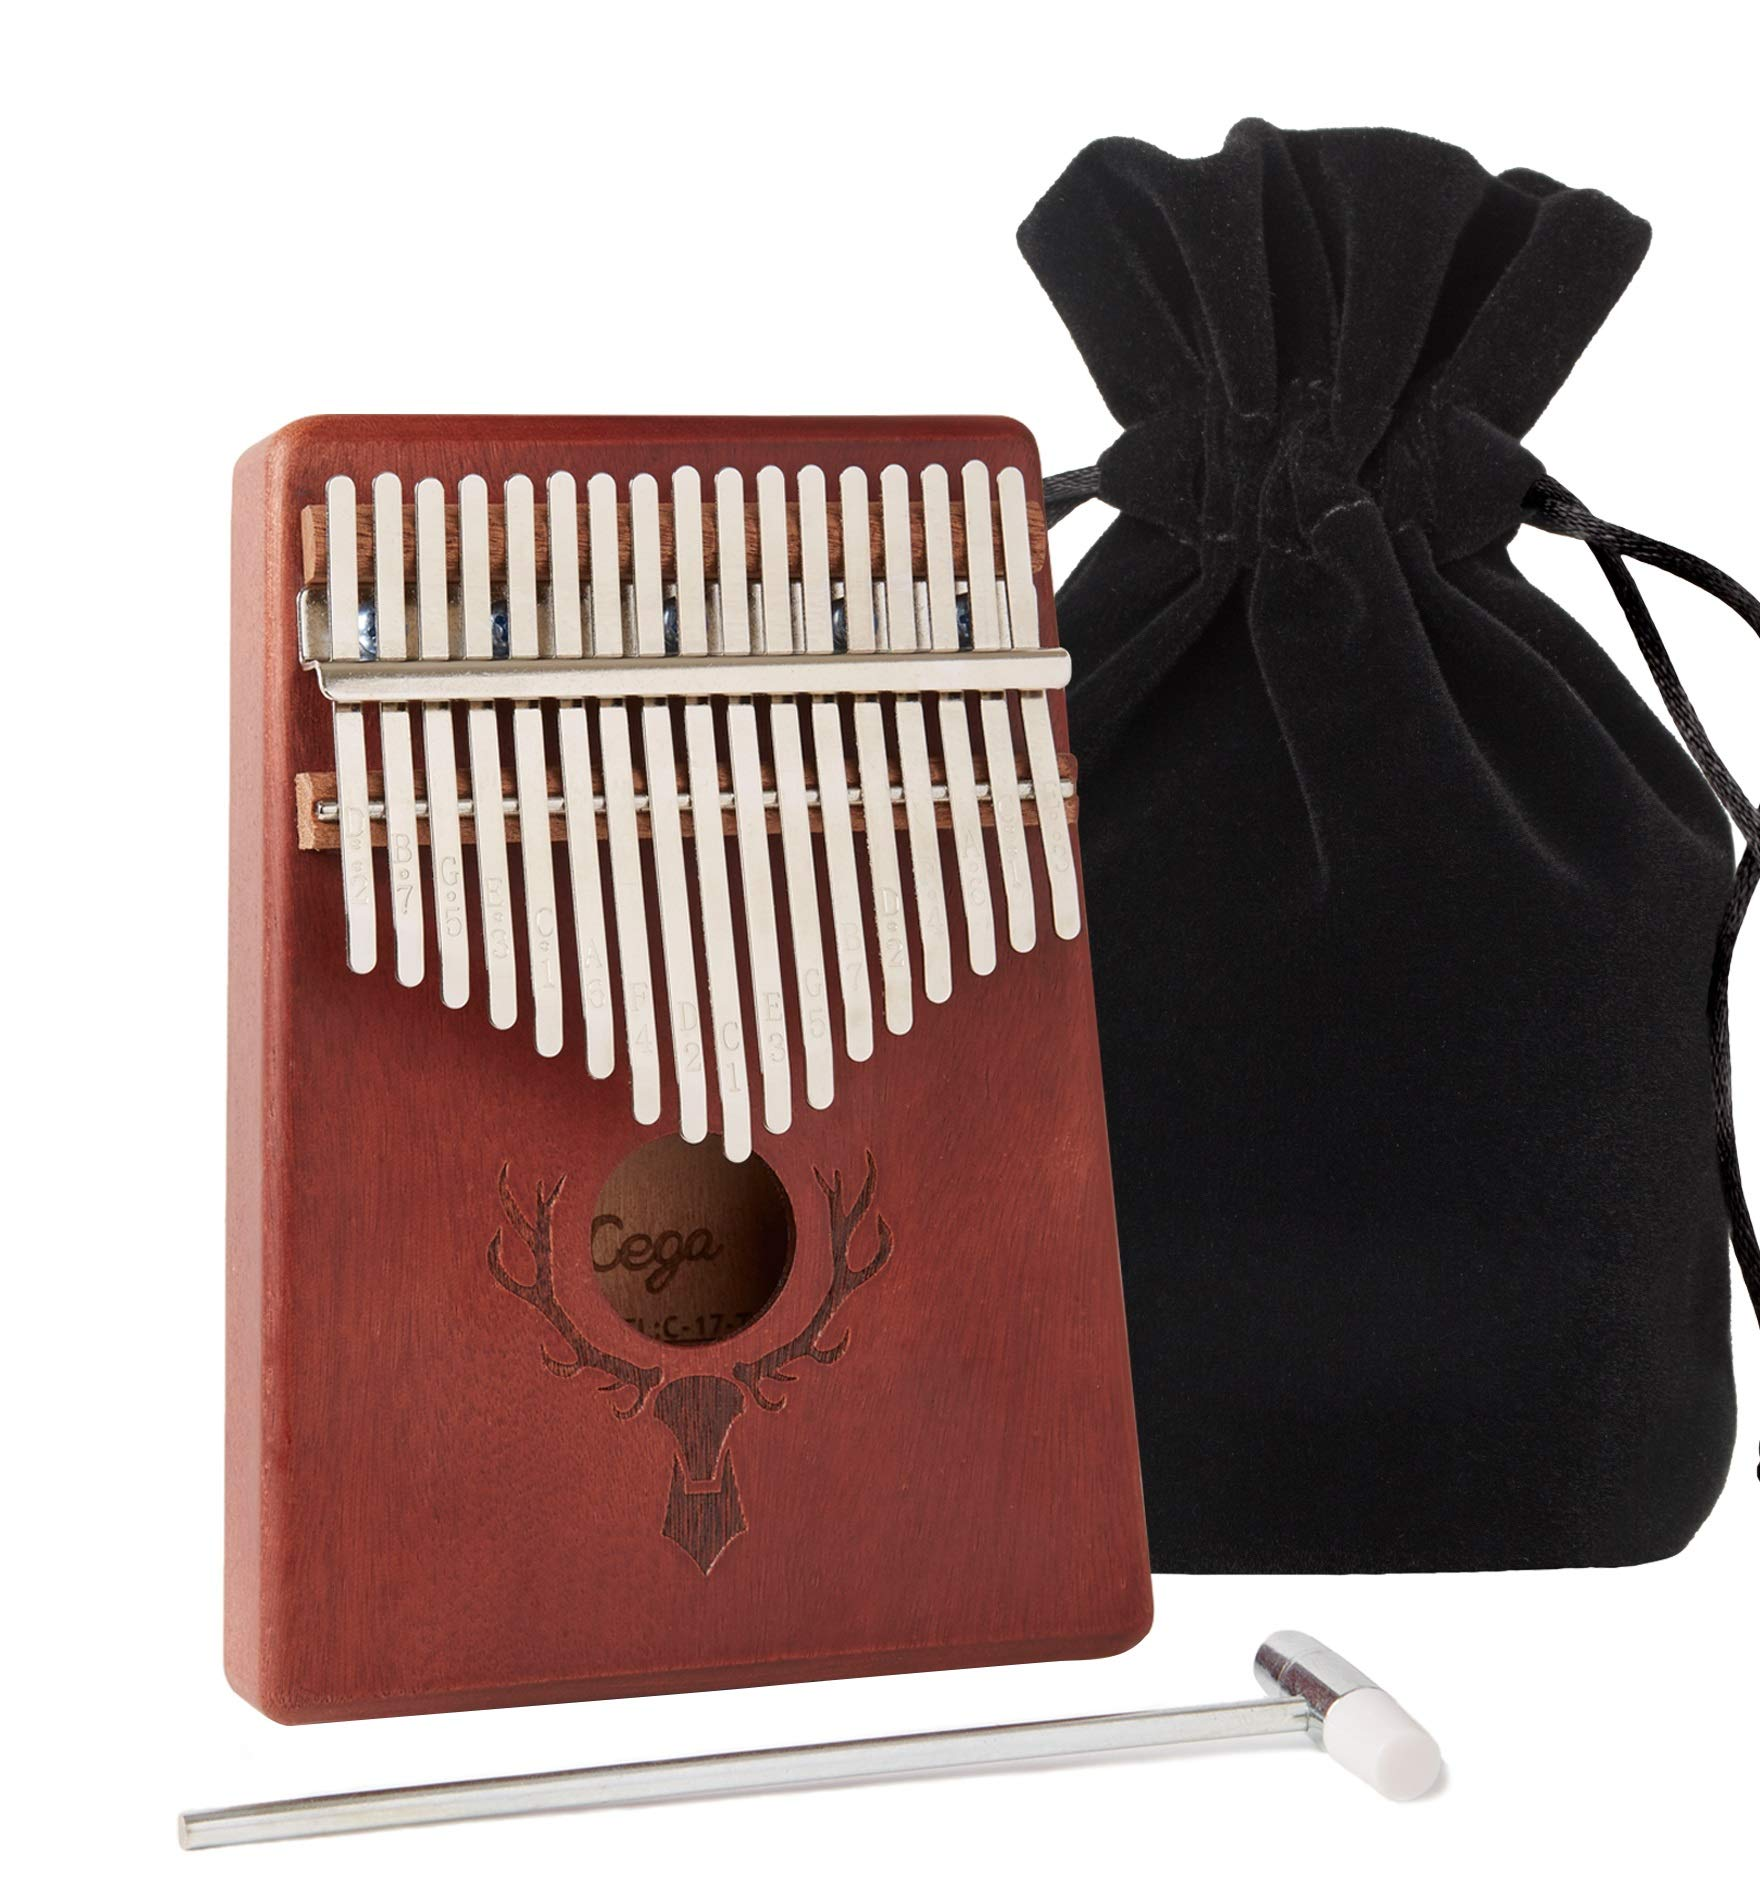 TimberTunes 17 Key Kalimba Thumb Finger Piano Therapy Musical Instrument for Adults Children, Solid Mahogany Wood, Engraved Elk Antler,Tuning Hammer and Music Book, Engraved Keys, Velvet Case, Unique